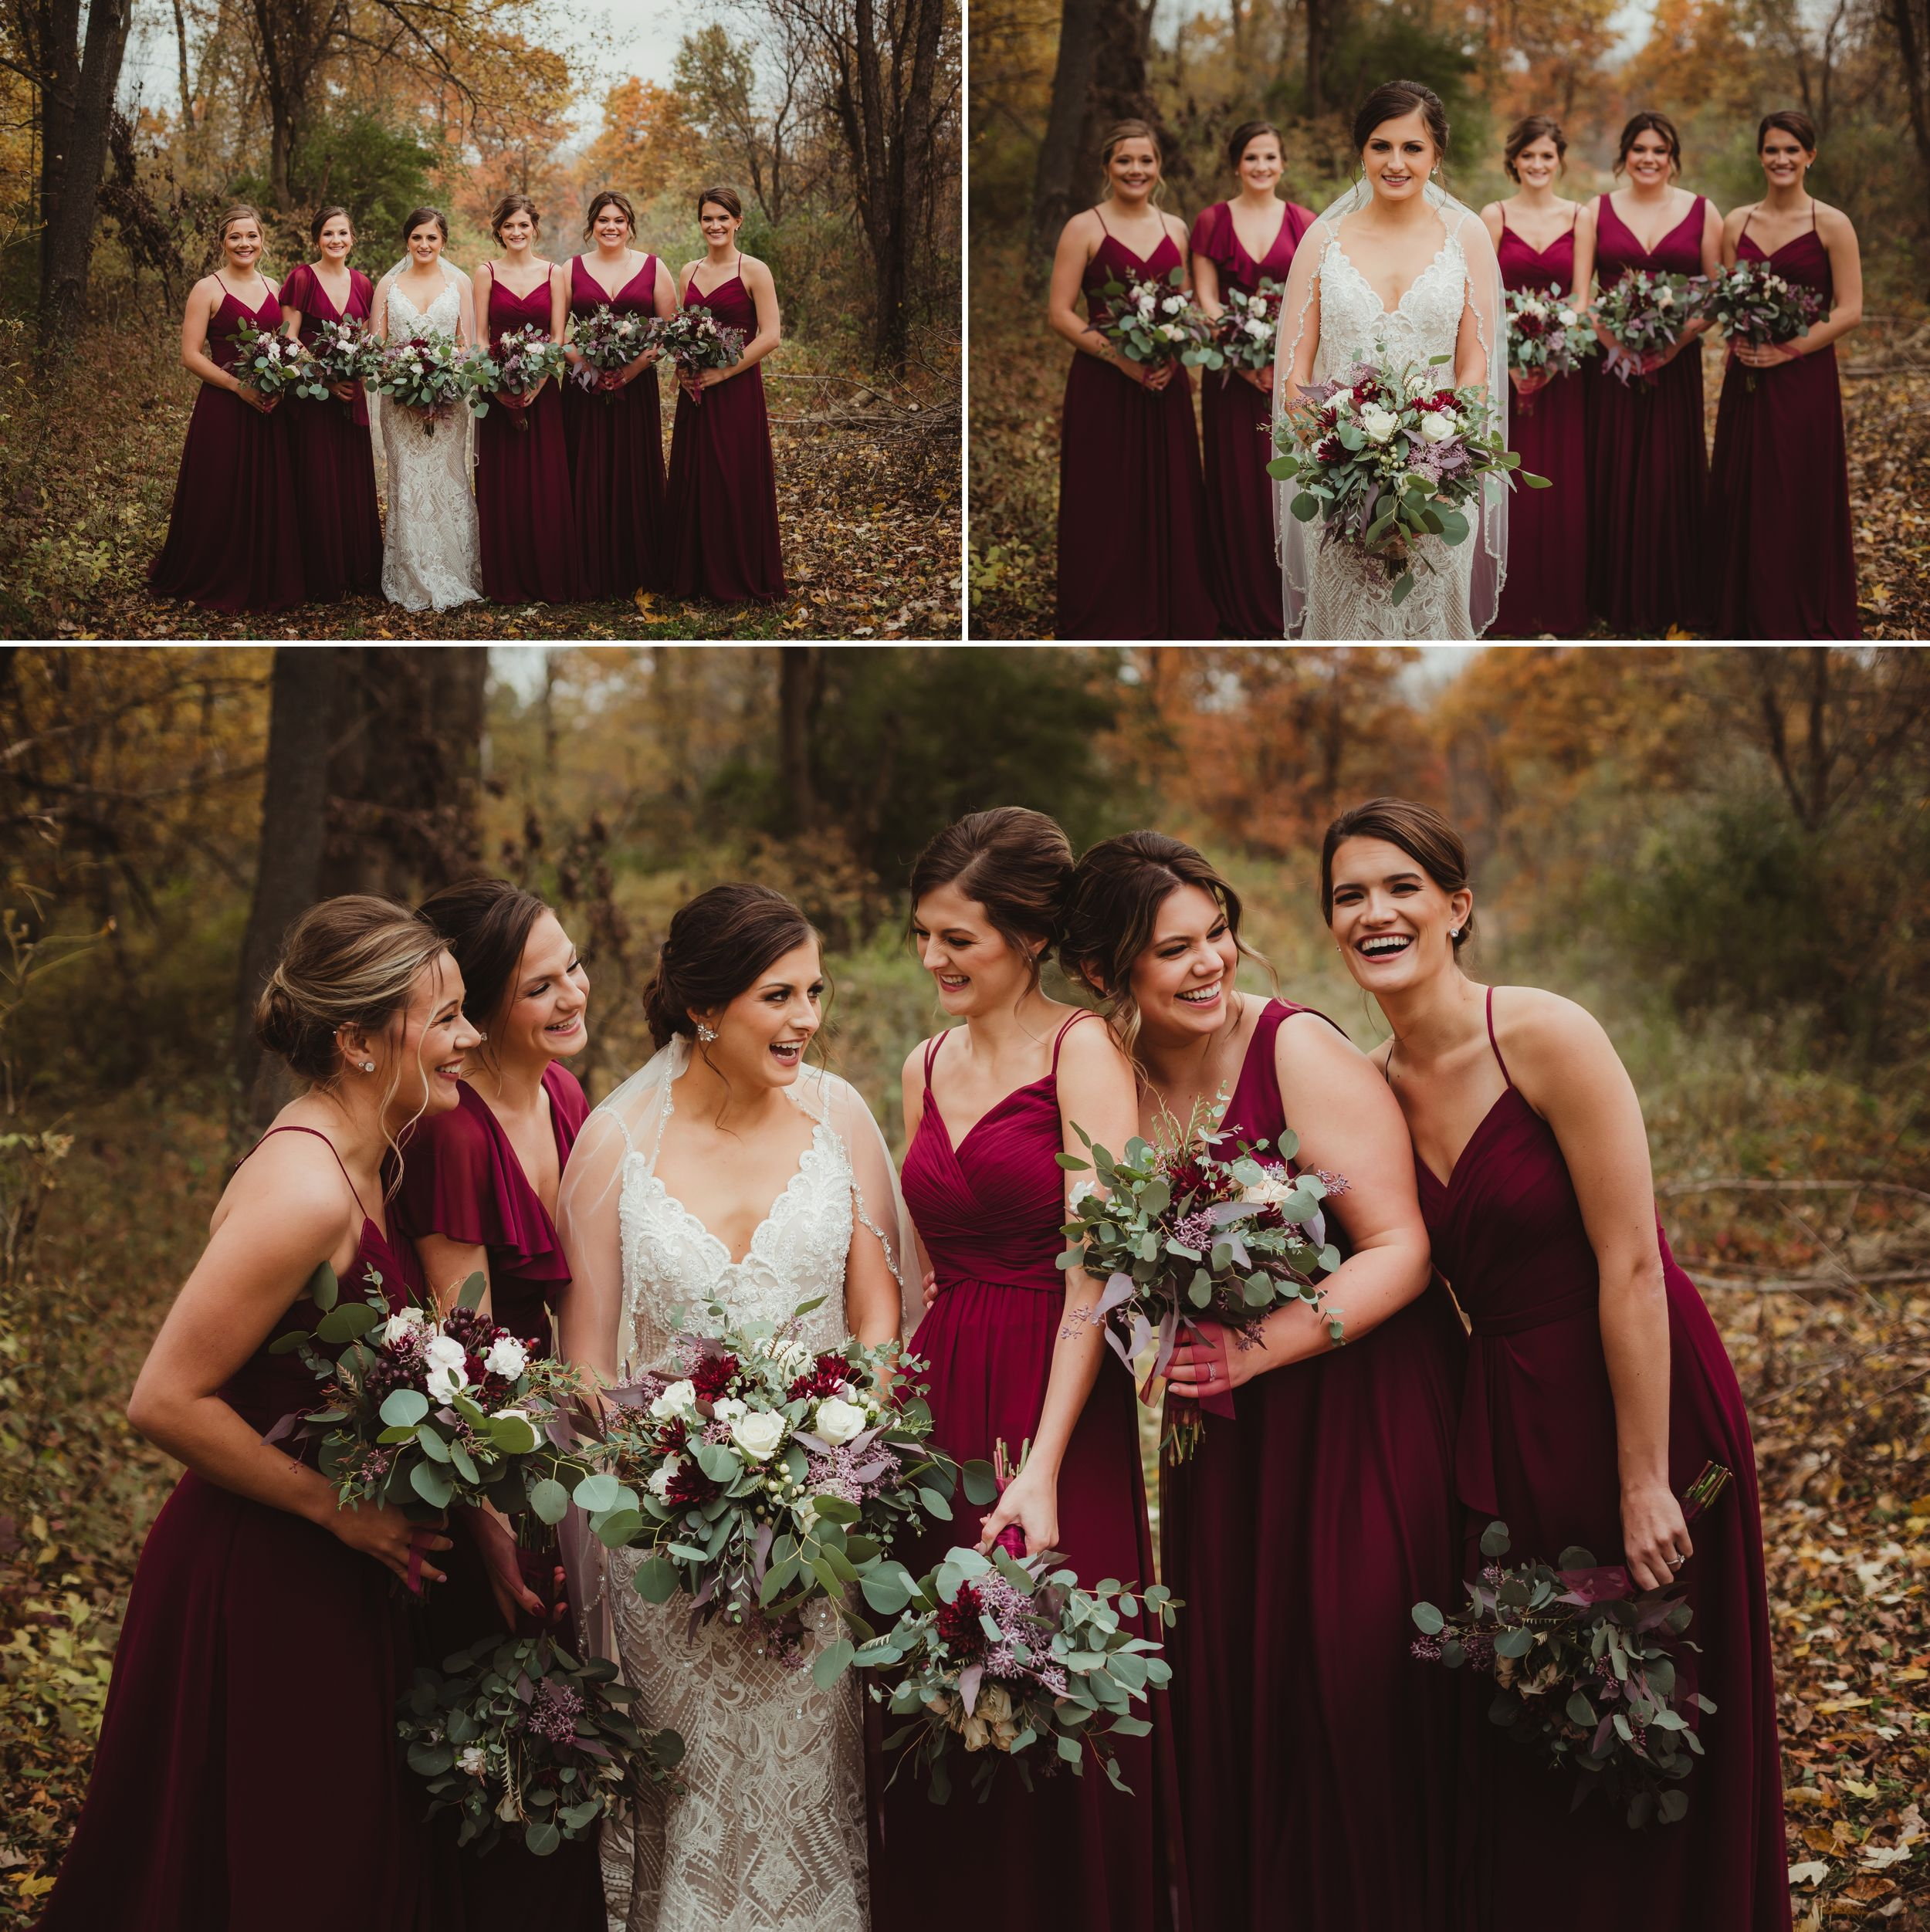 Bride in form fitting beaded dress and bridesmaids in floor length maroon dresses with bouquets of eucalyptus and roses.